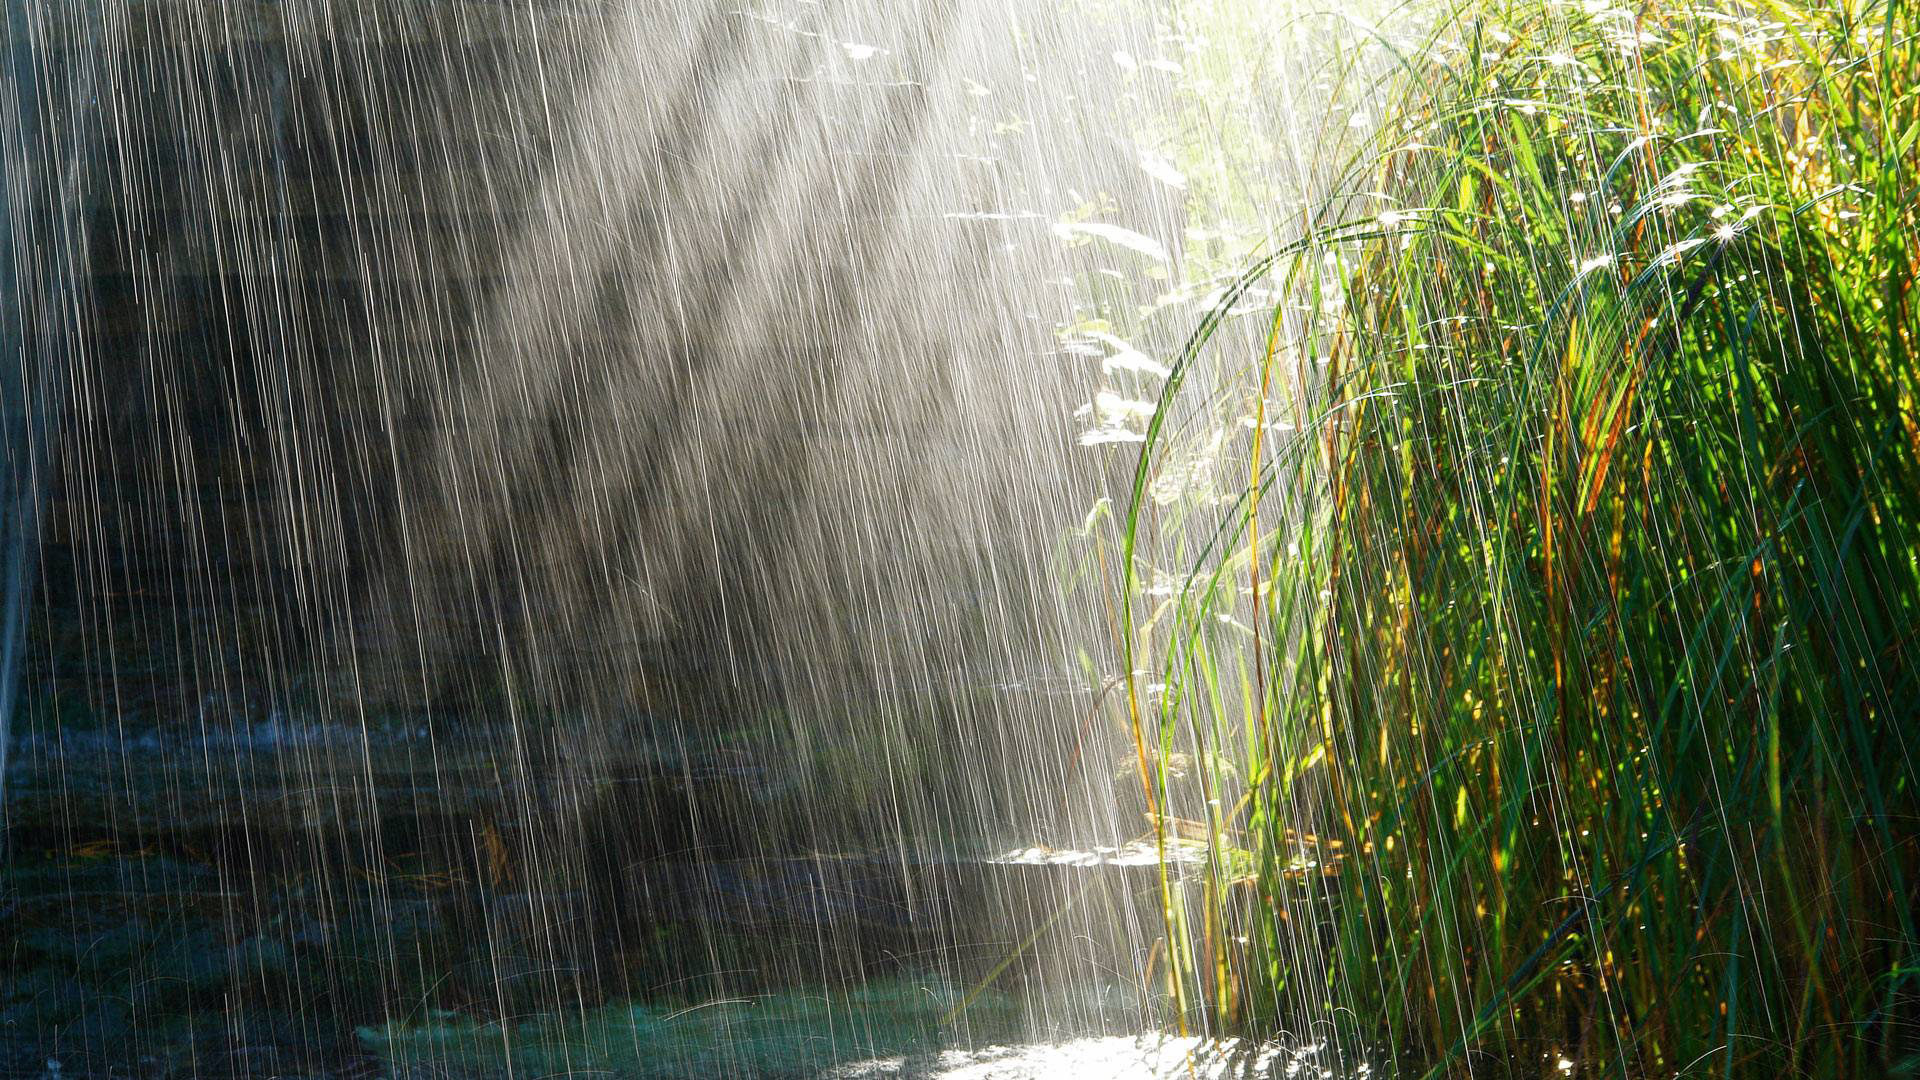 Study: Climate Models Have Been Estimating Rainfall Incorrectly This Whole Time